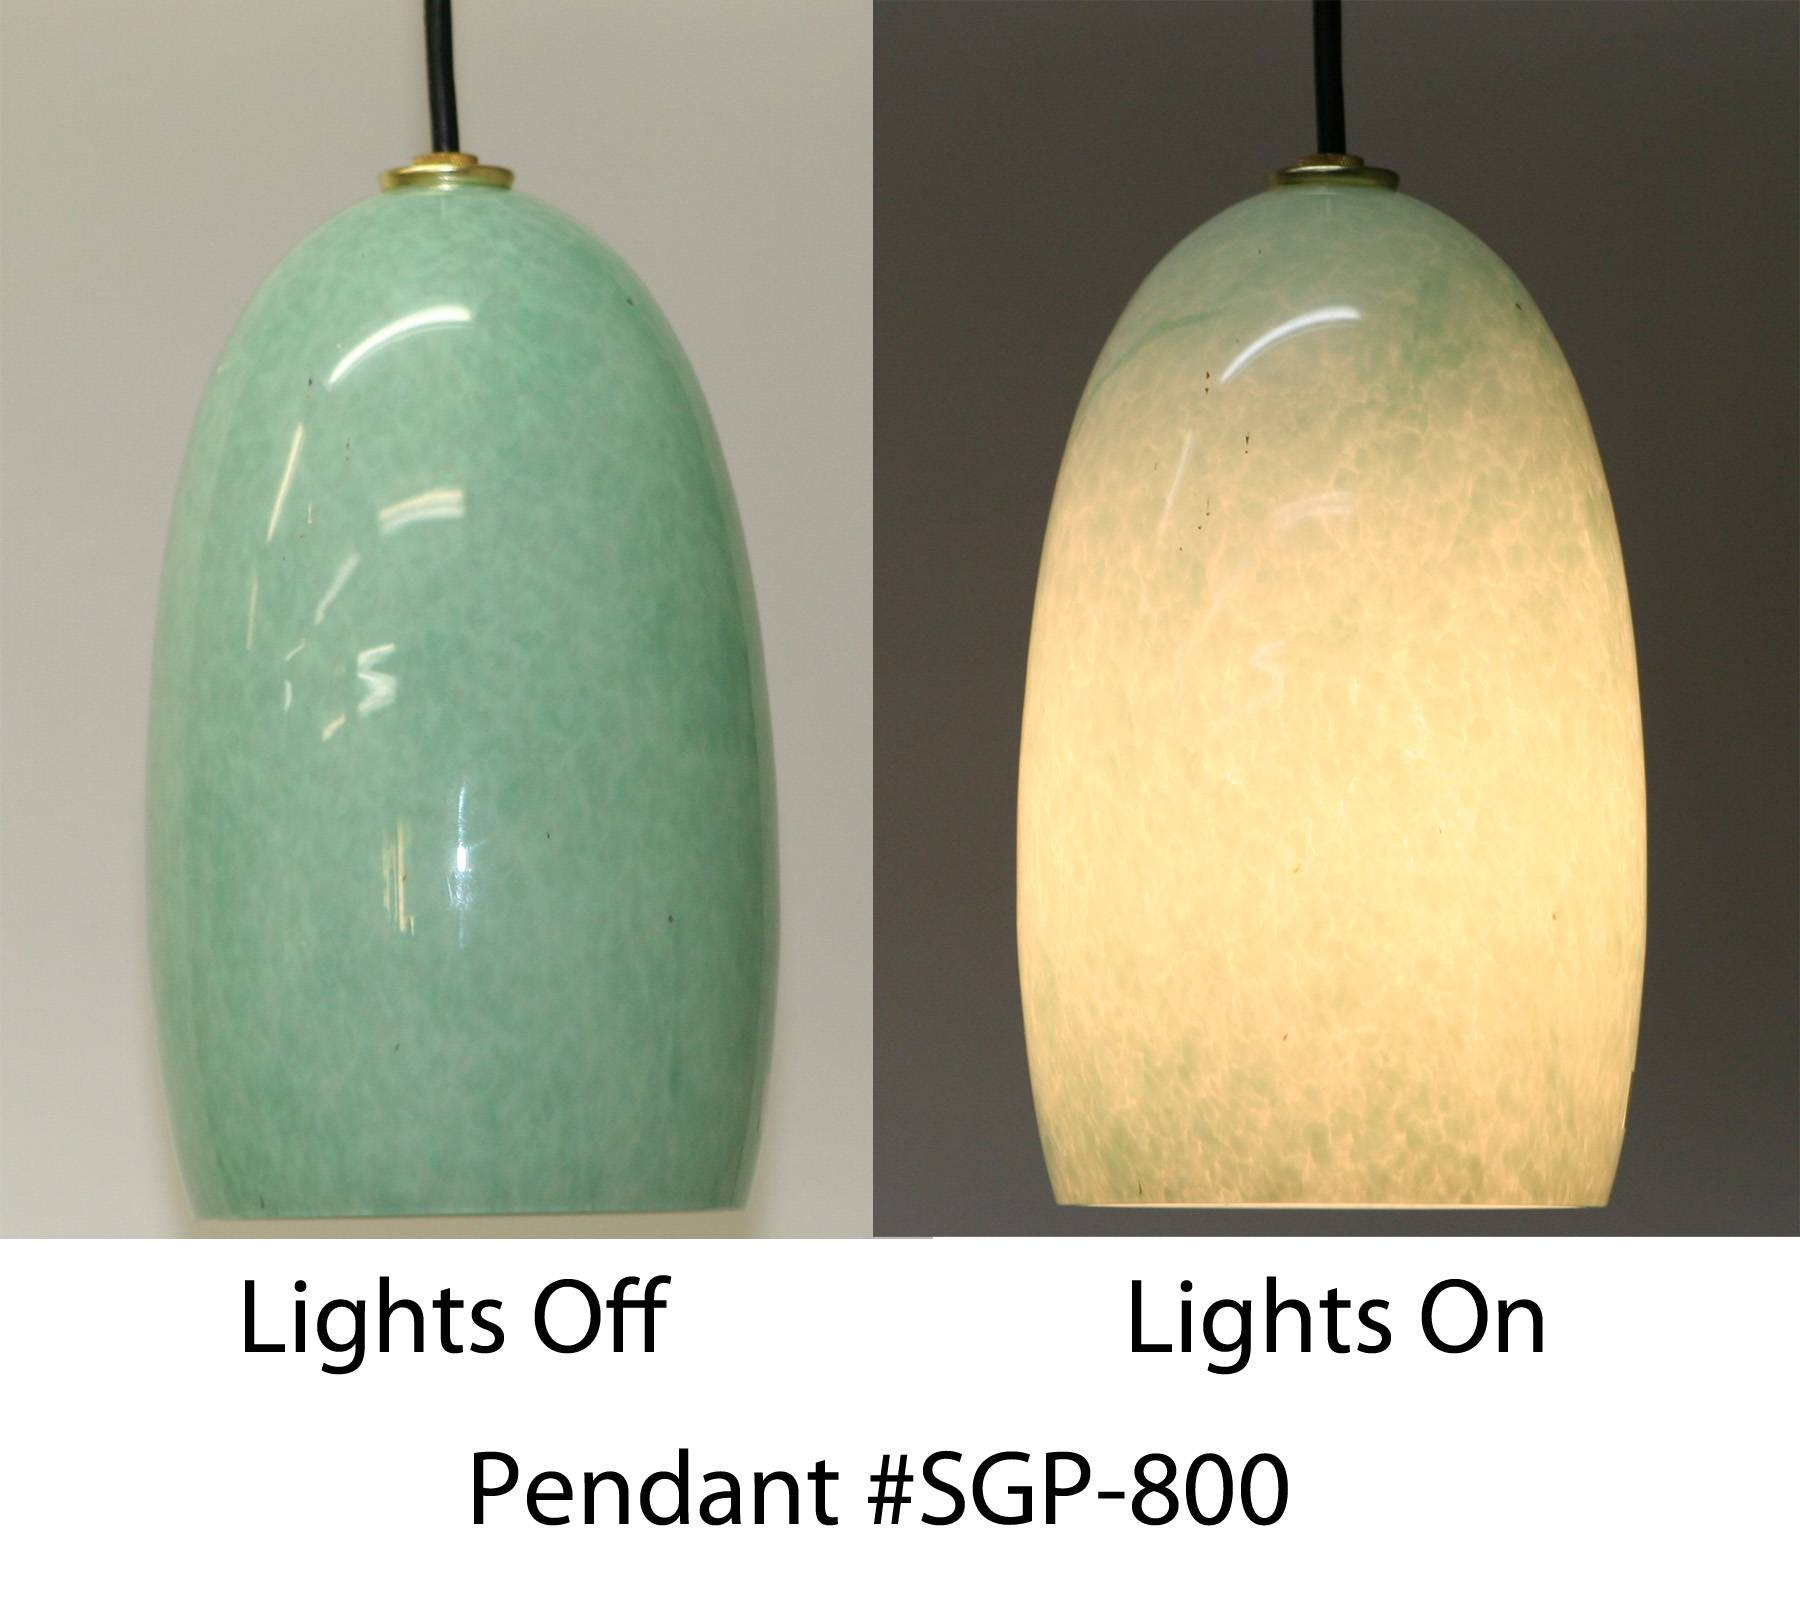 Celadon Hand Blown Glass Pendant Light | Artisan Crafted Home with Artisan Glass Pendant Lights (Image 13 of 23)